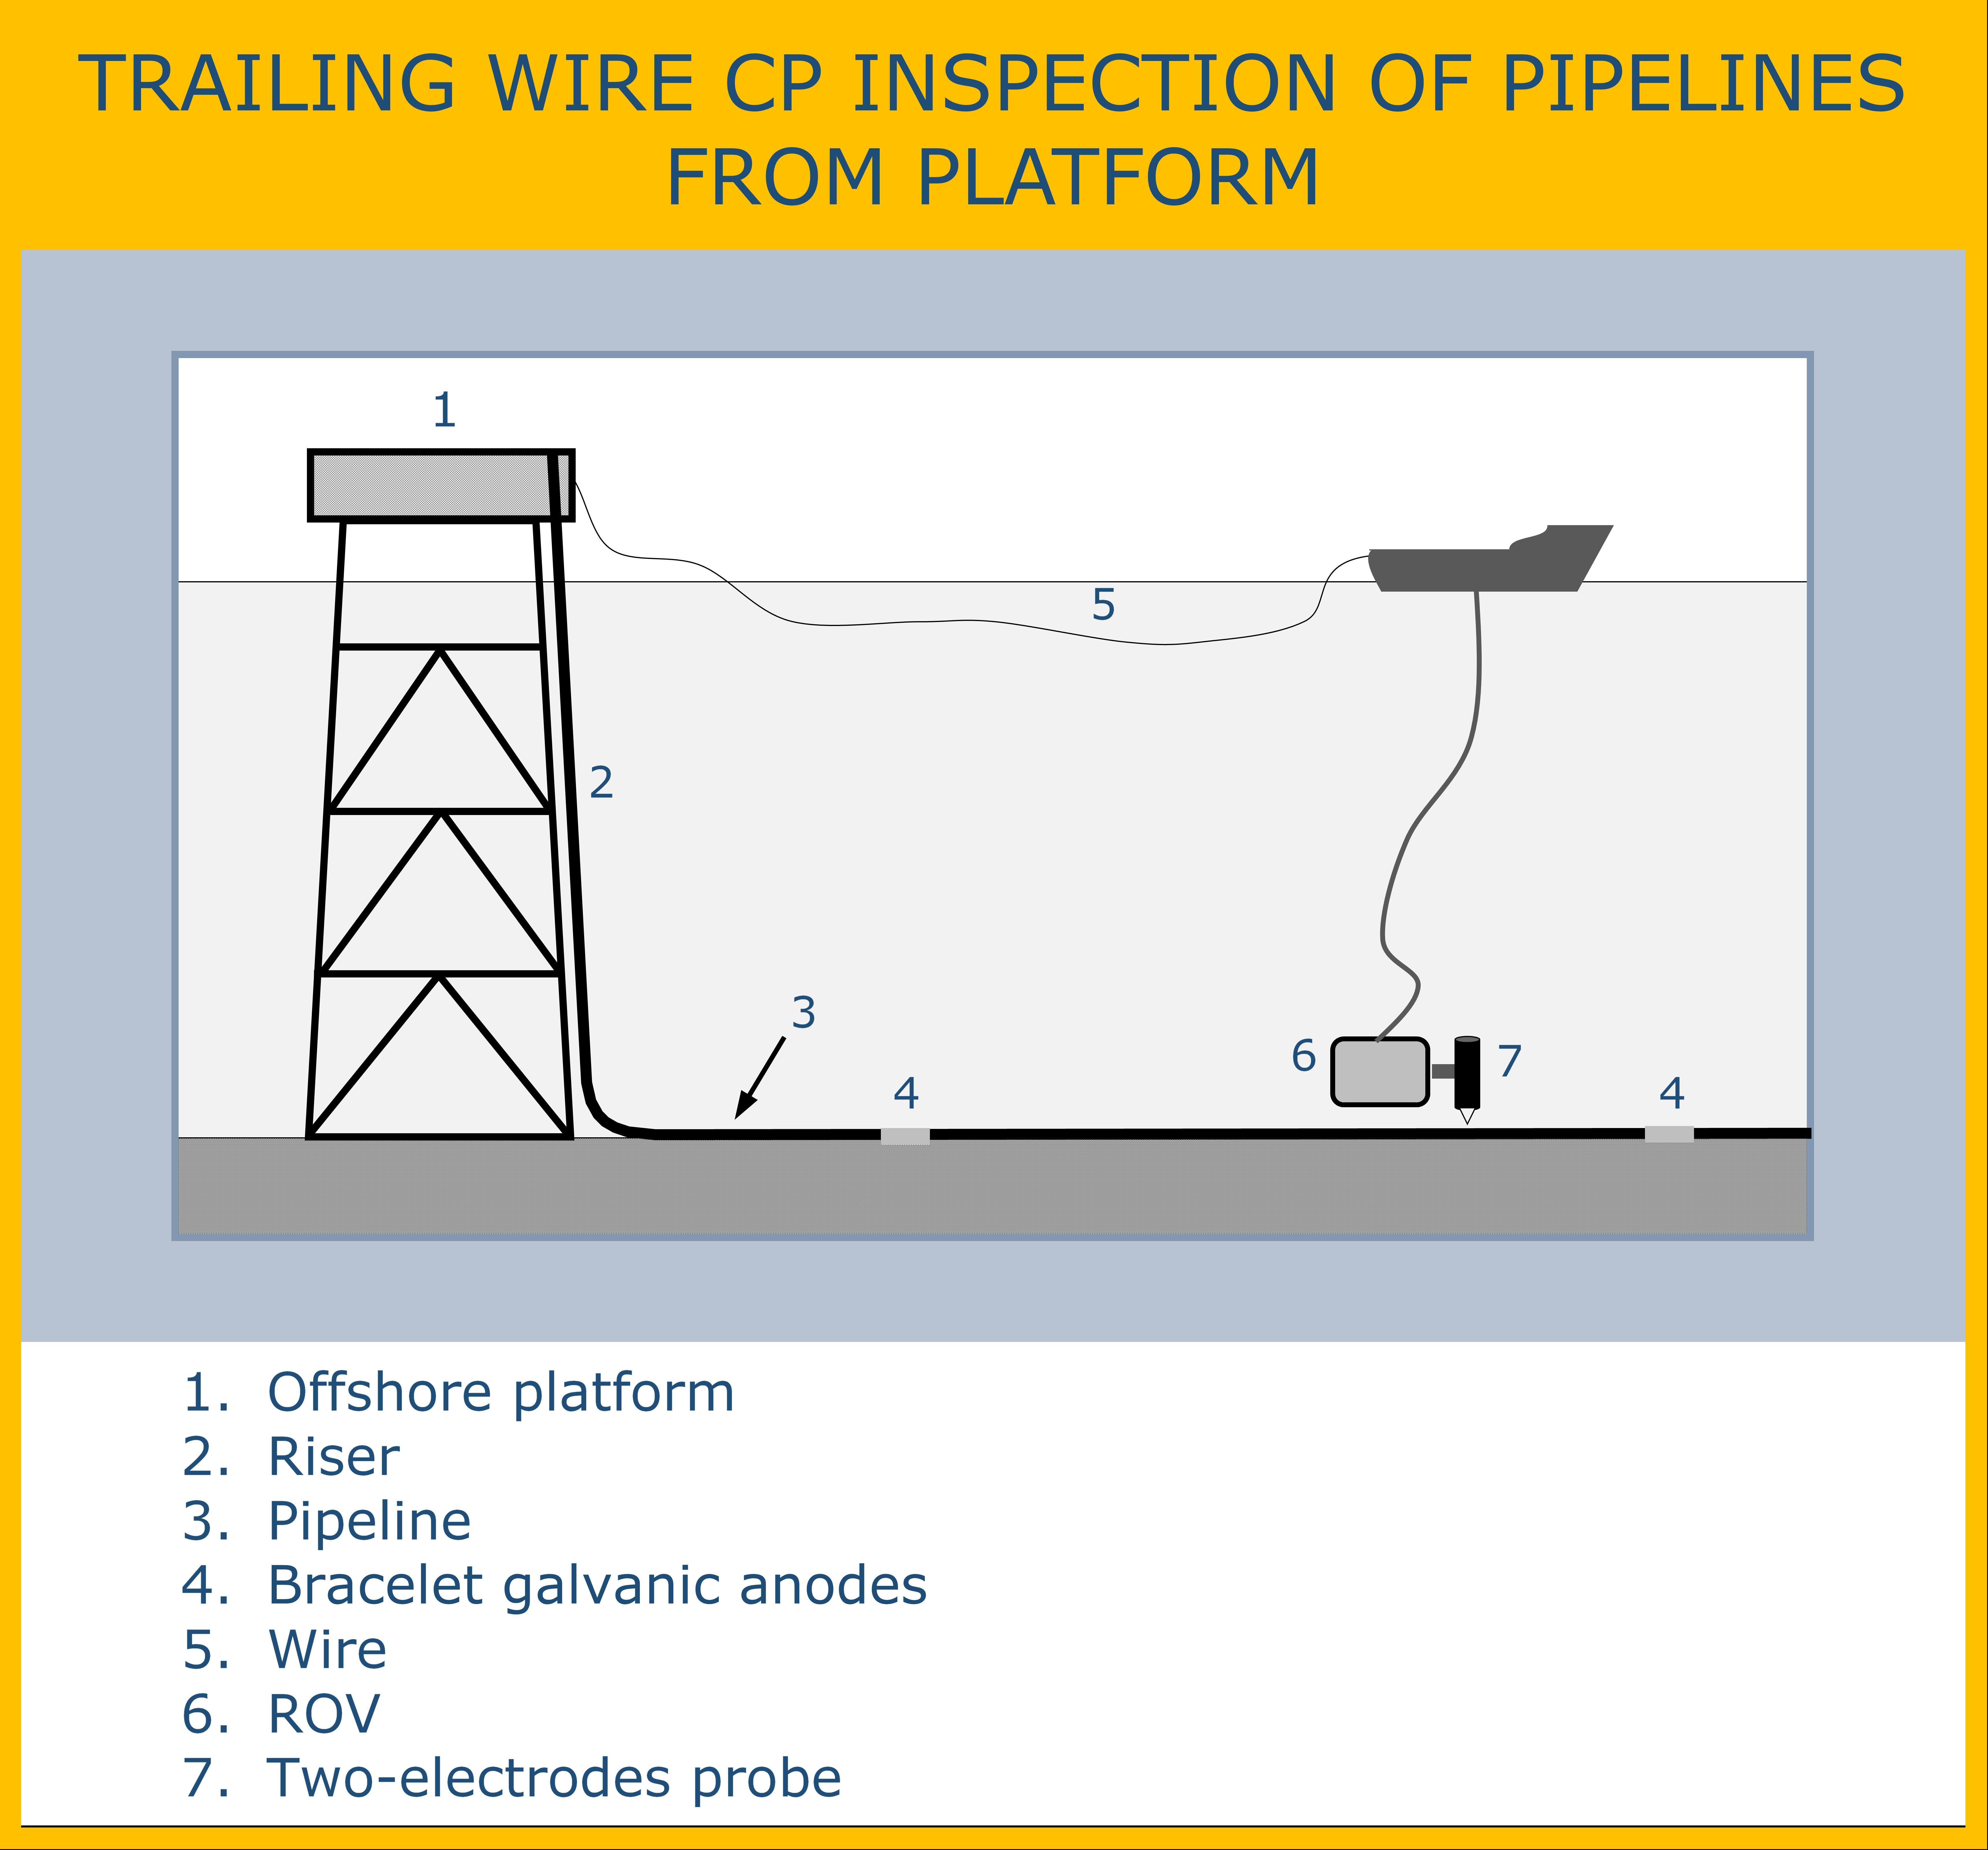 Cescor - Cathodic protection inspection on subsea pipelines